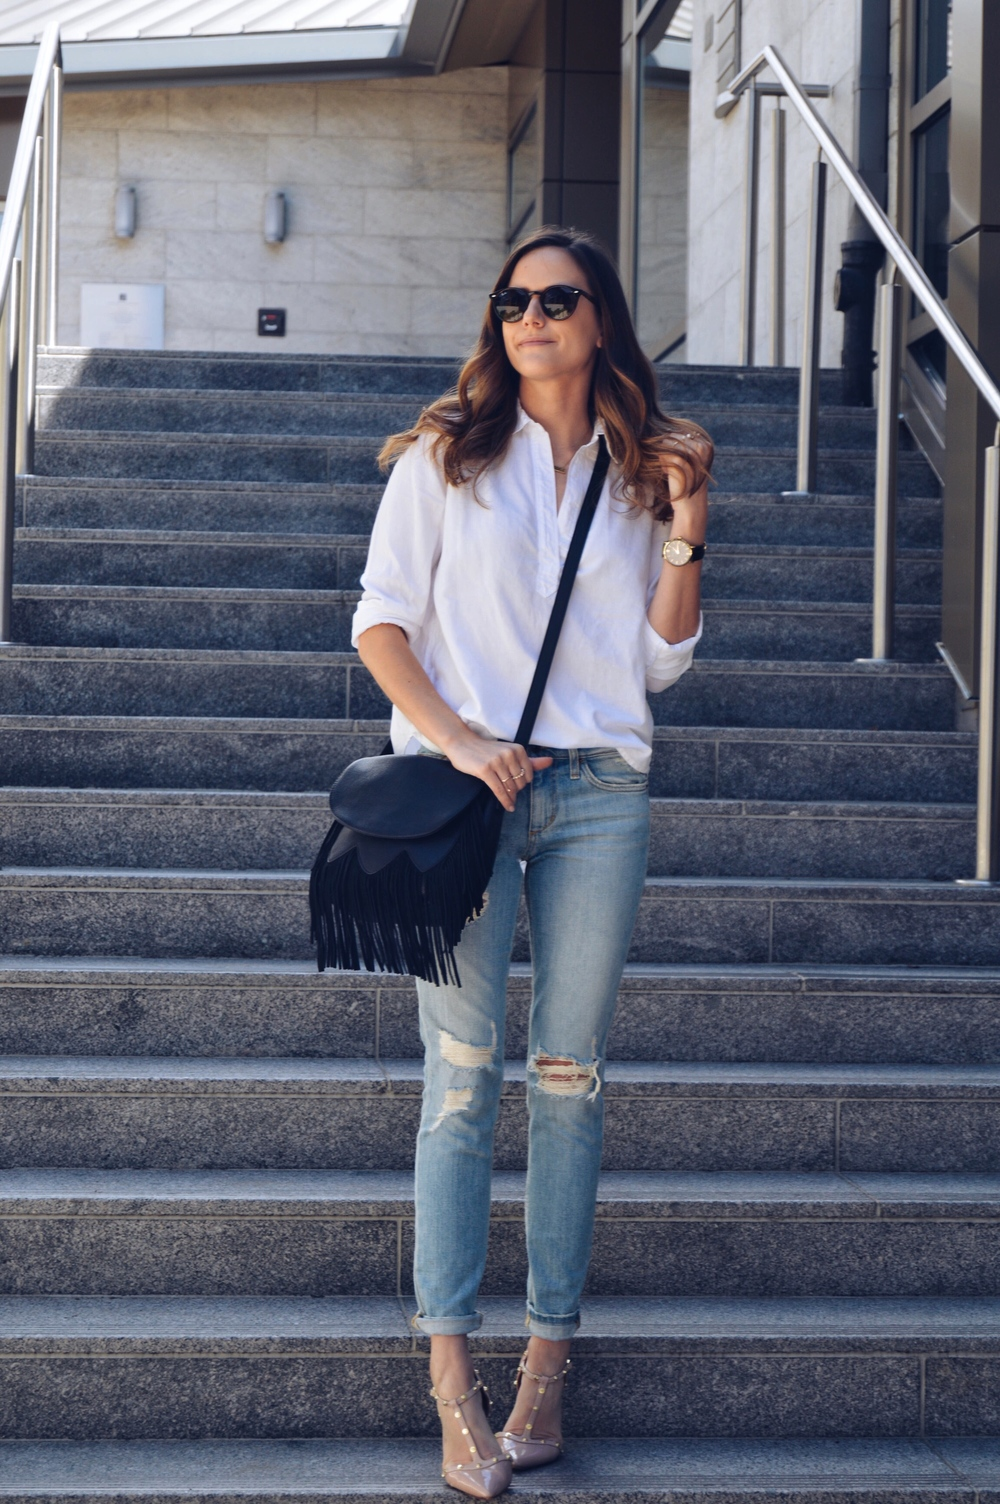 Shop the Look Below. Top: c/o Lou & Grey. Jeans: Joe's. Shoes: Nordstrom. Bag: c/o Sole Society. Rings: c/o BaubleBar (see all below). Sunglasses: Ray-Ban. Watch: Marc Bale c/o The Peach Box